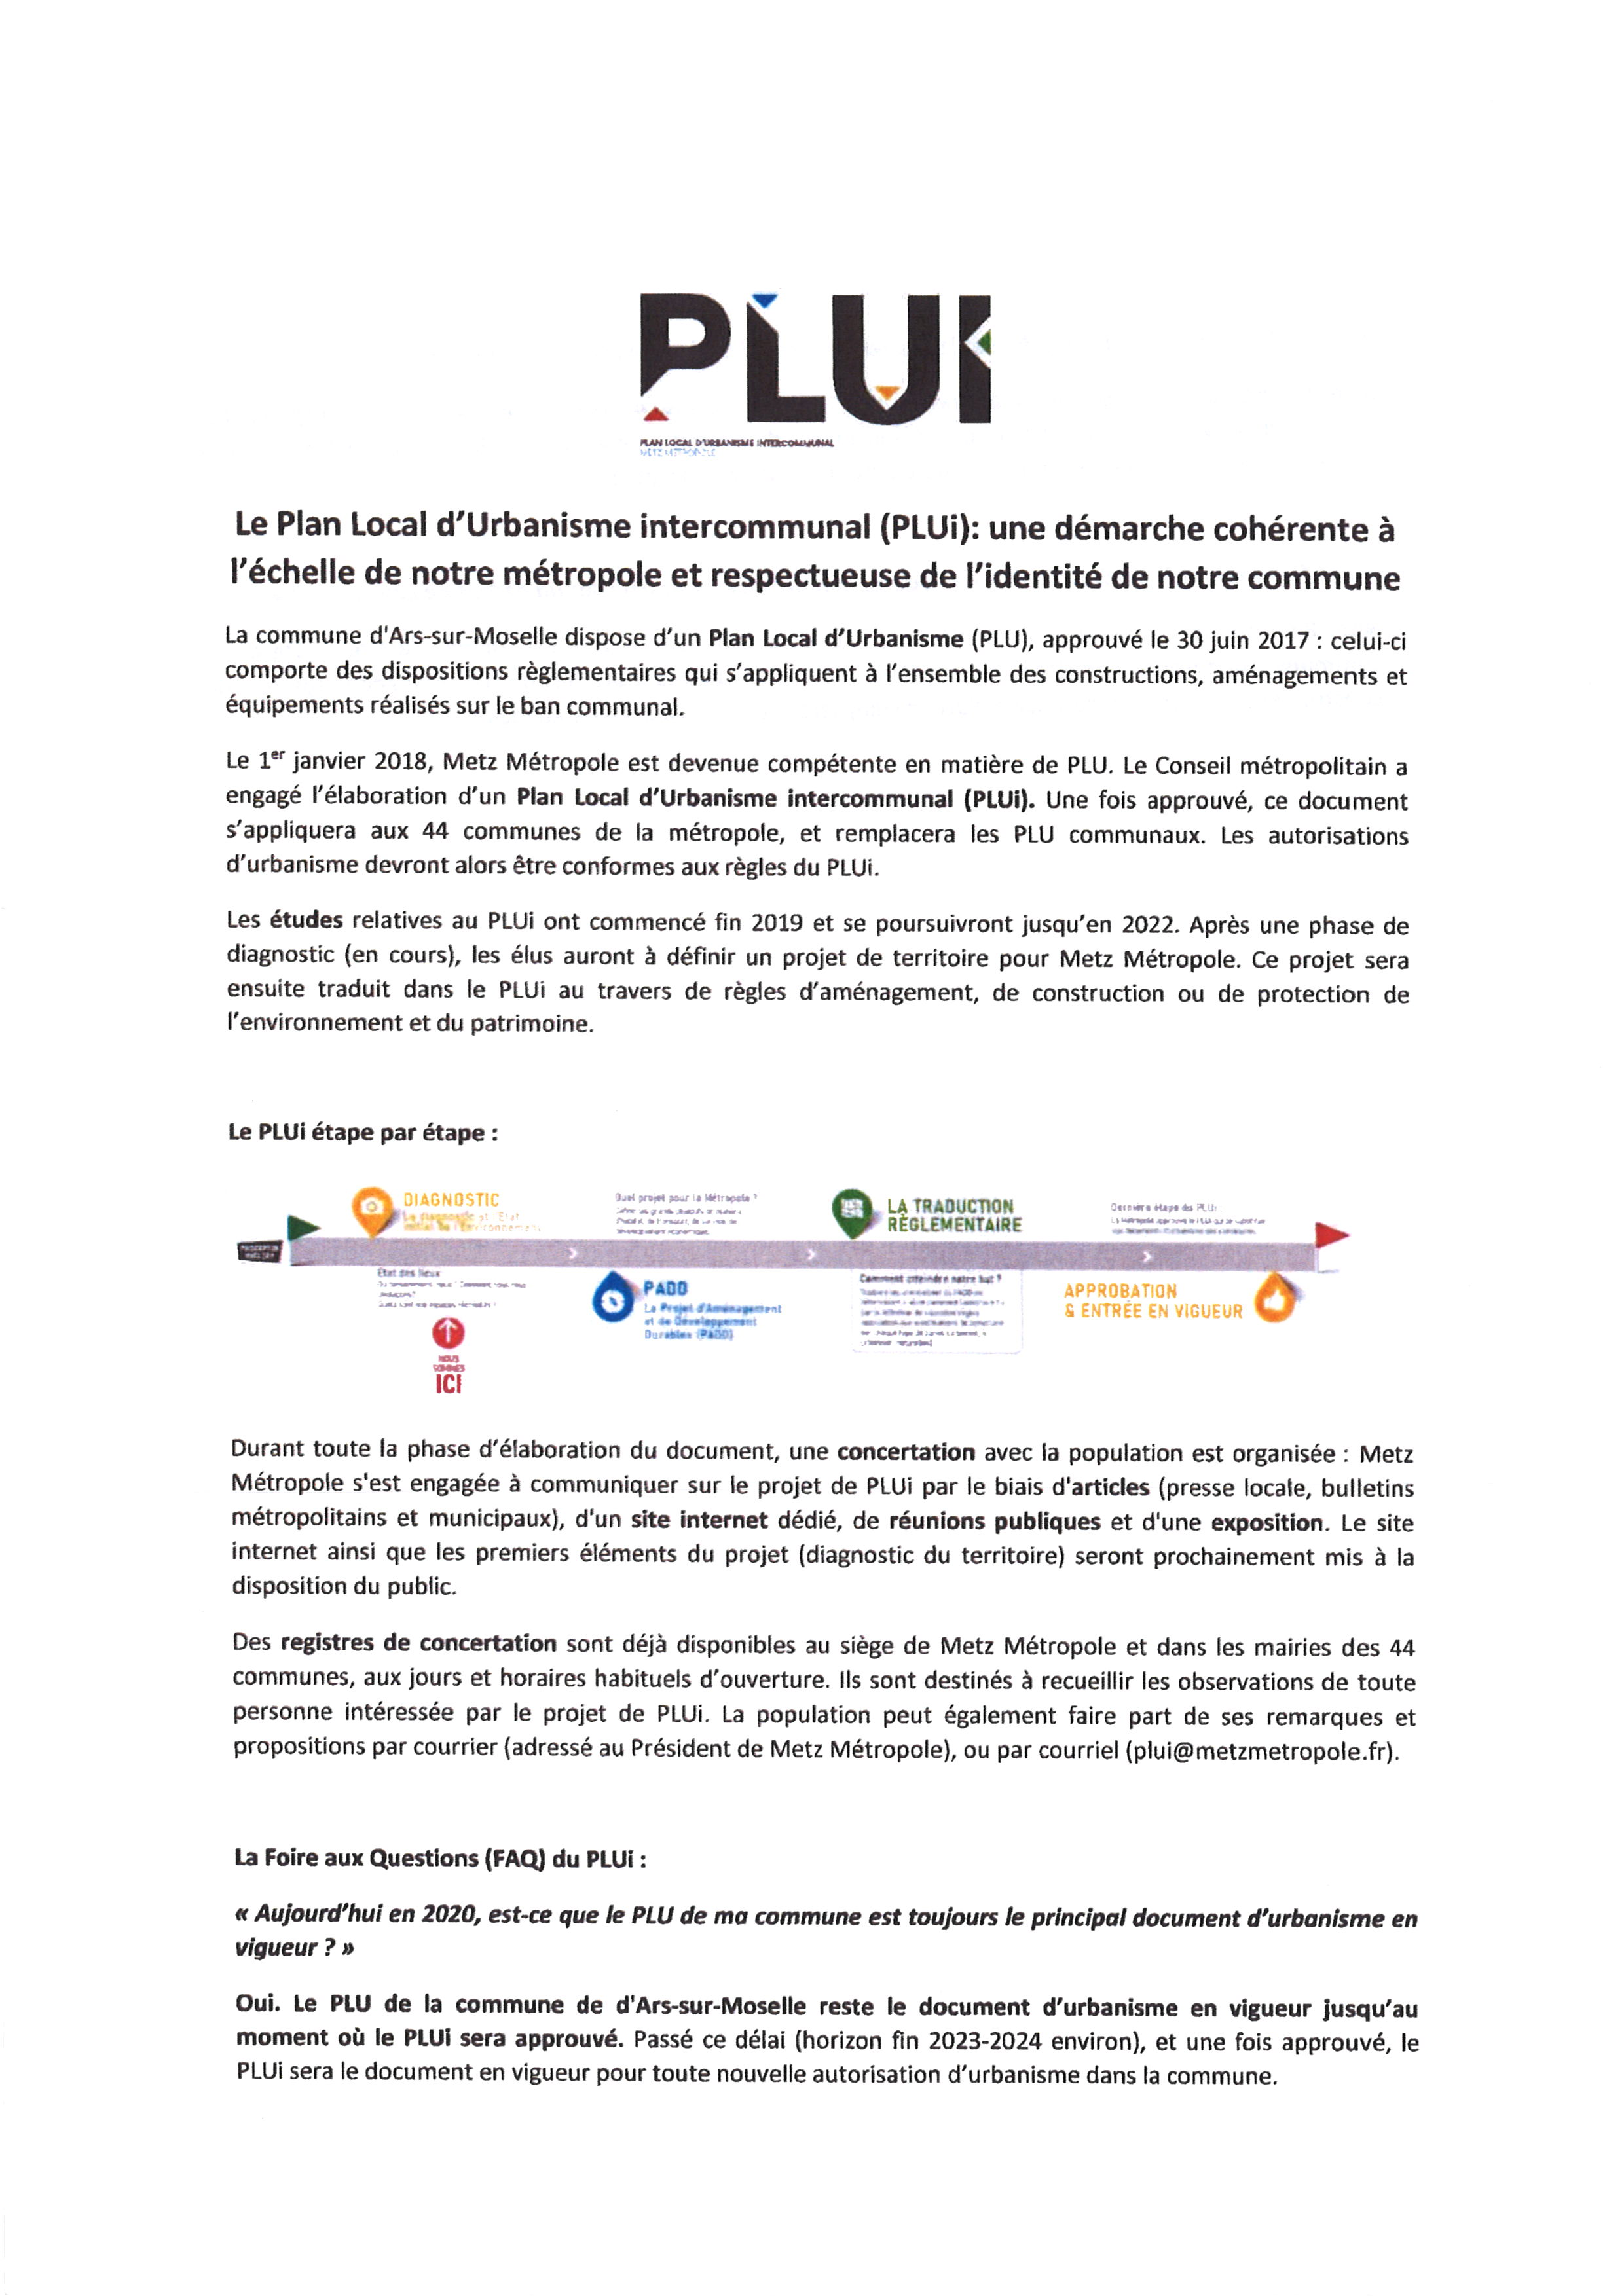 Le Plan Local d'Urbanisme Intercommunal (PLUI)